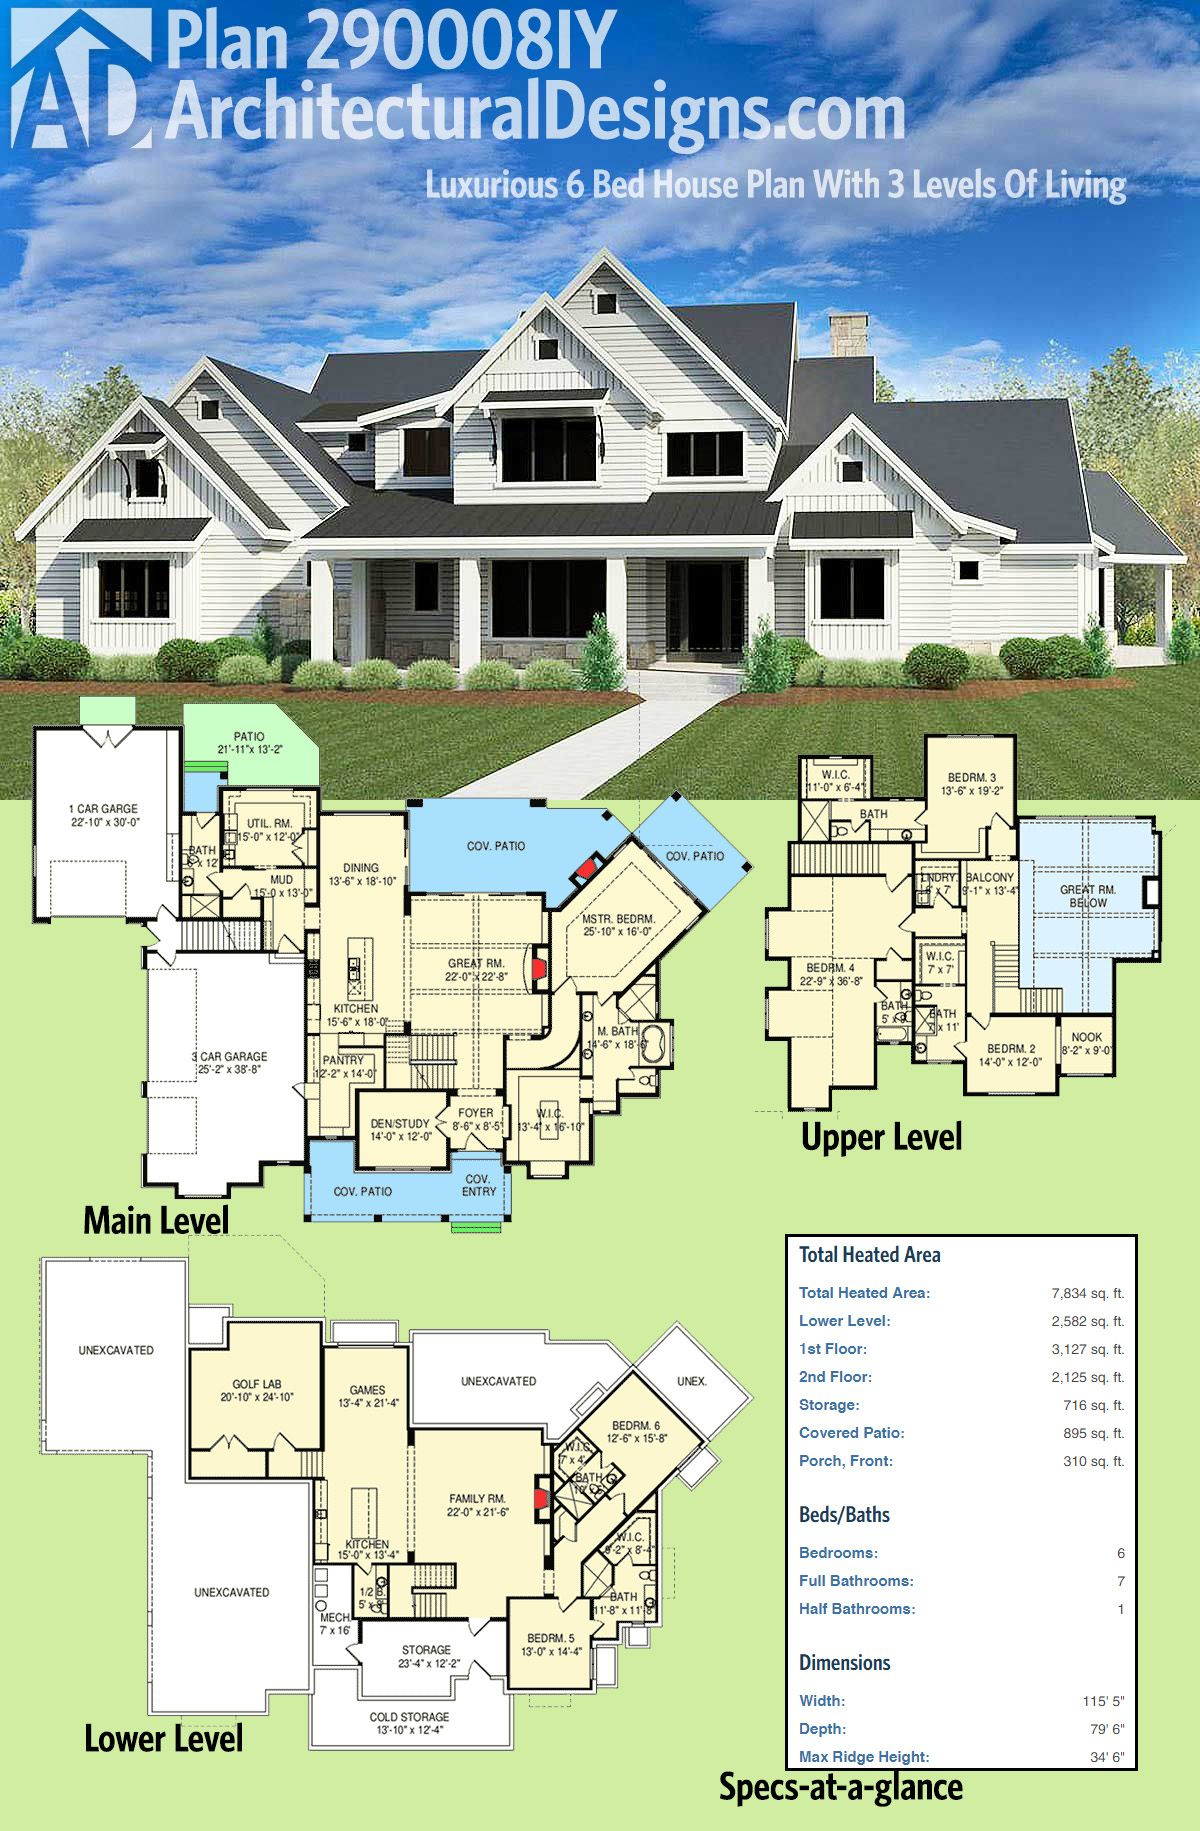 Plan 290008IY: Luxurious 6 Bed House Plan With 3 Levels Of Living ...